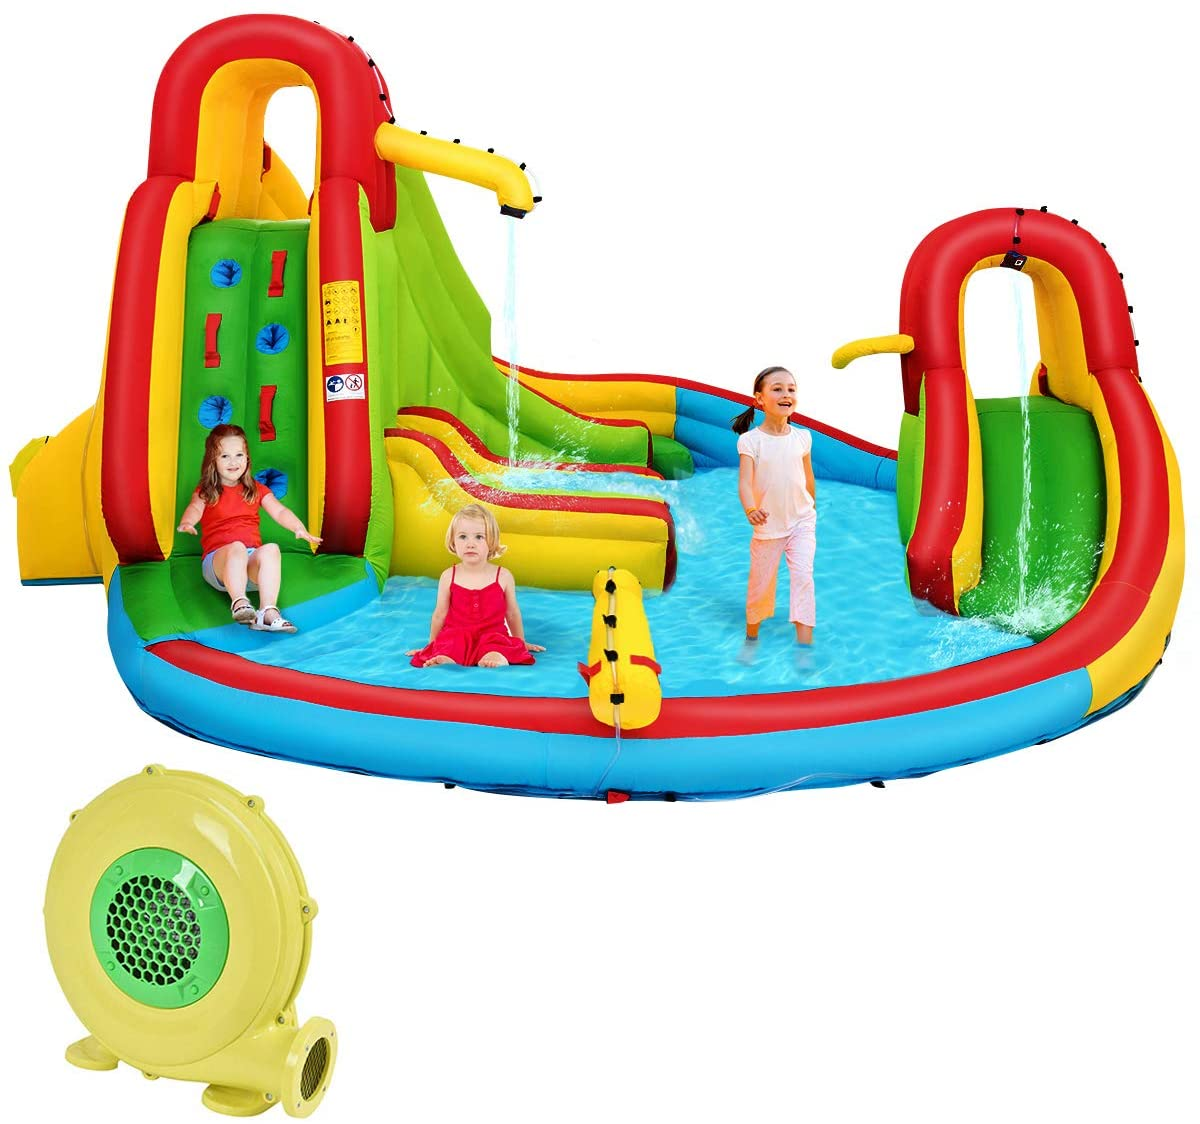 Horizoncare.in Inflatable Water Slide Bounce Park Splash Pool with Water Cannon & 680W Blower